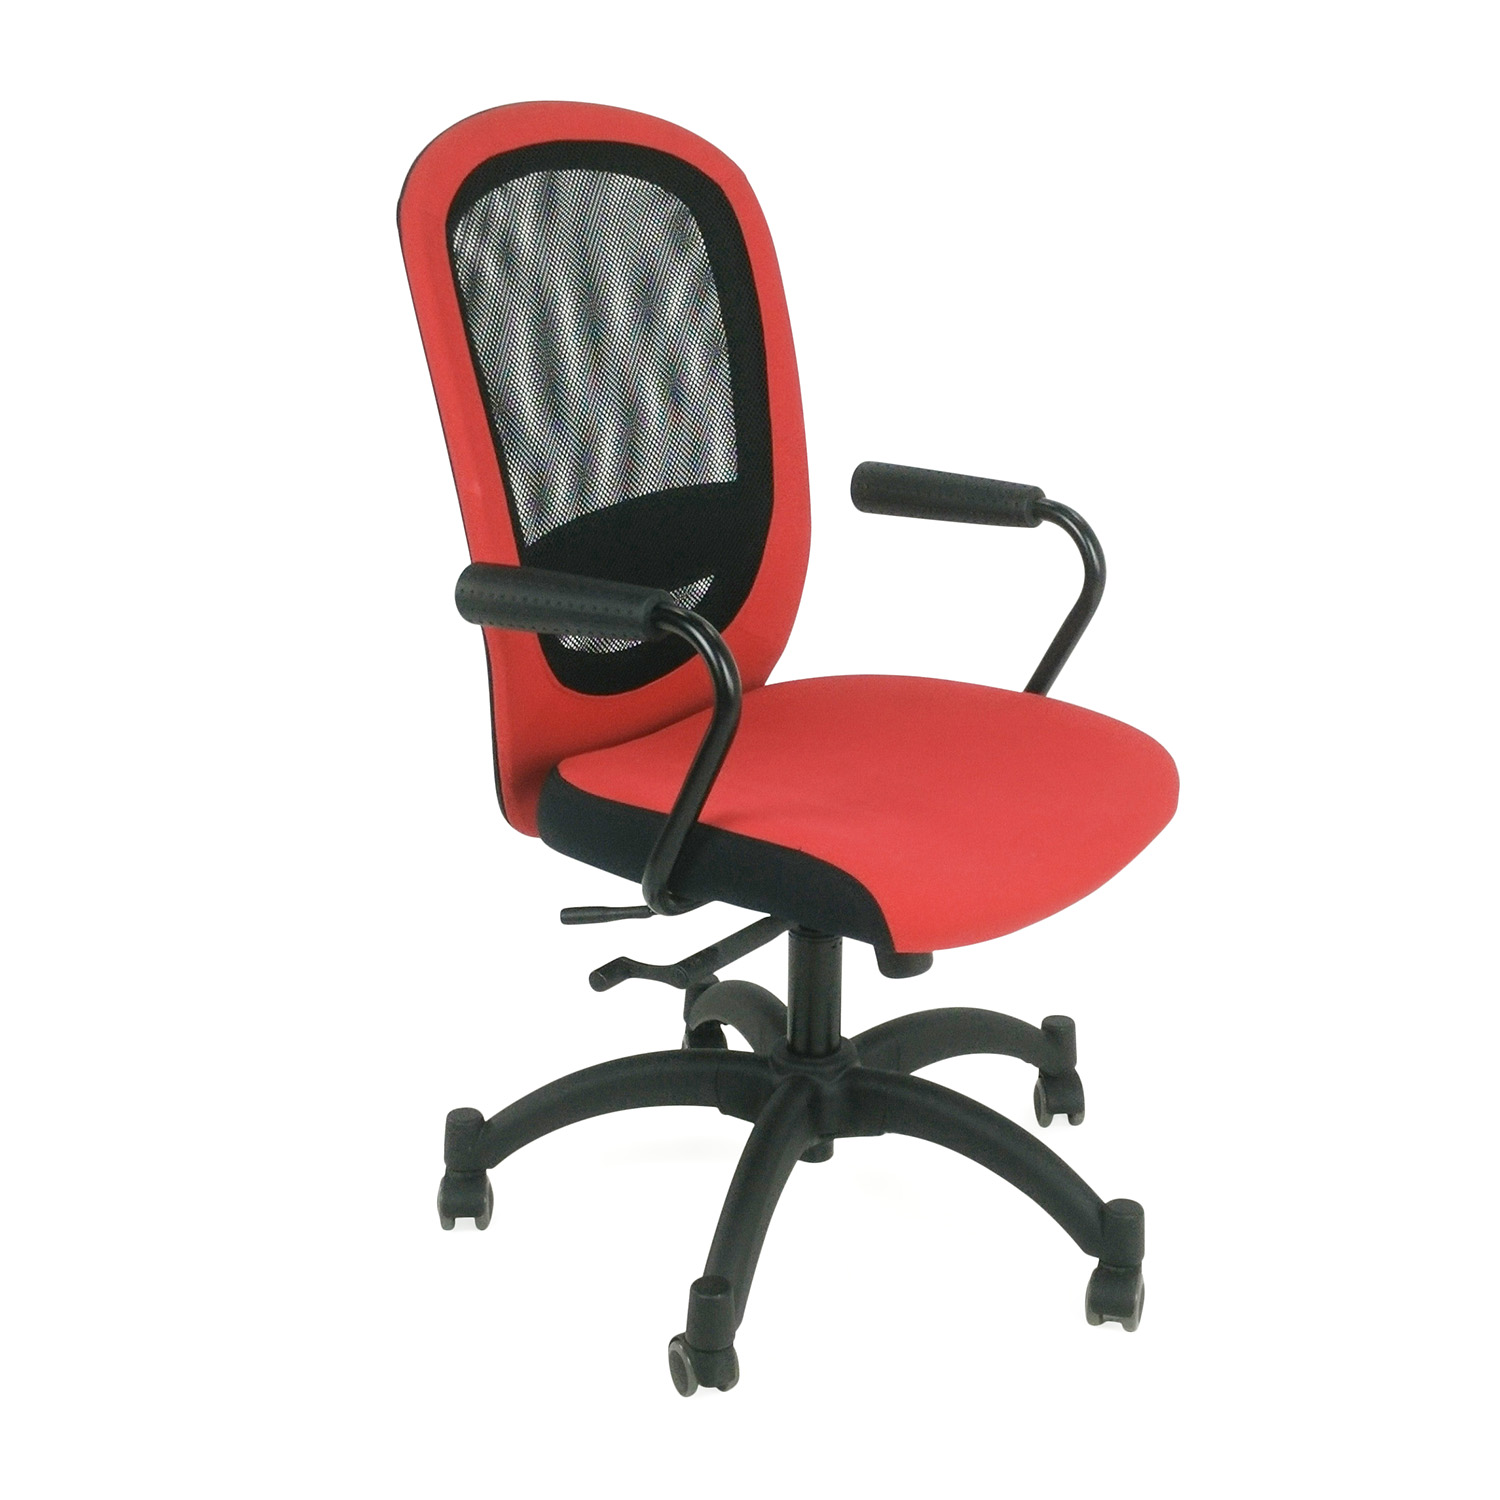 IKEA Red Office Chair discount